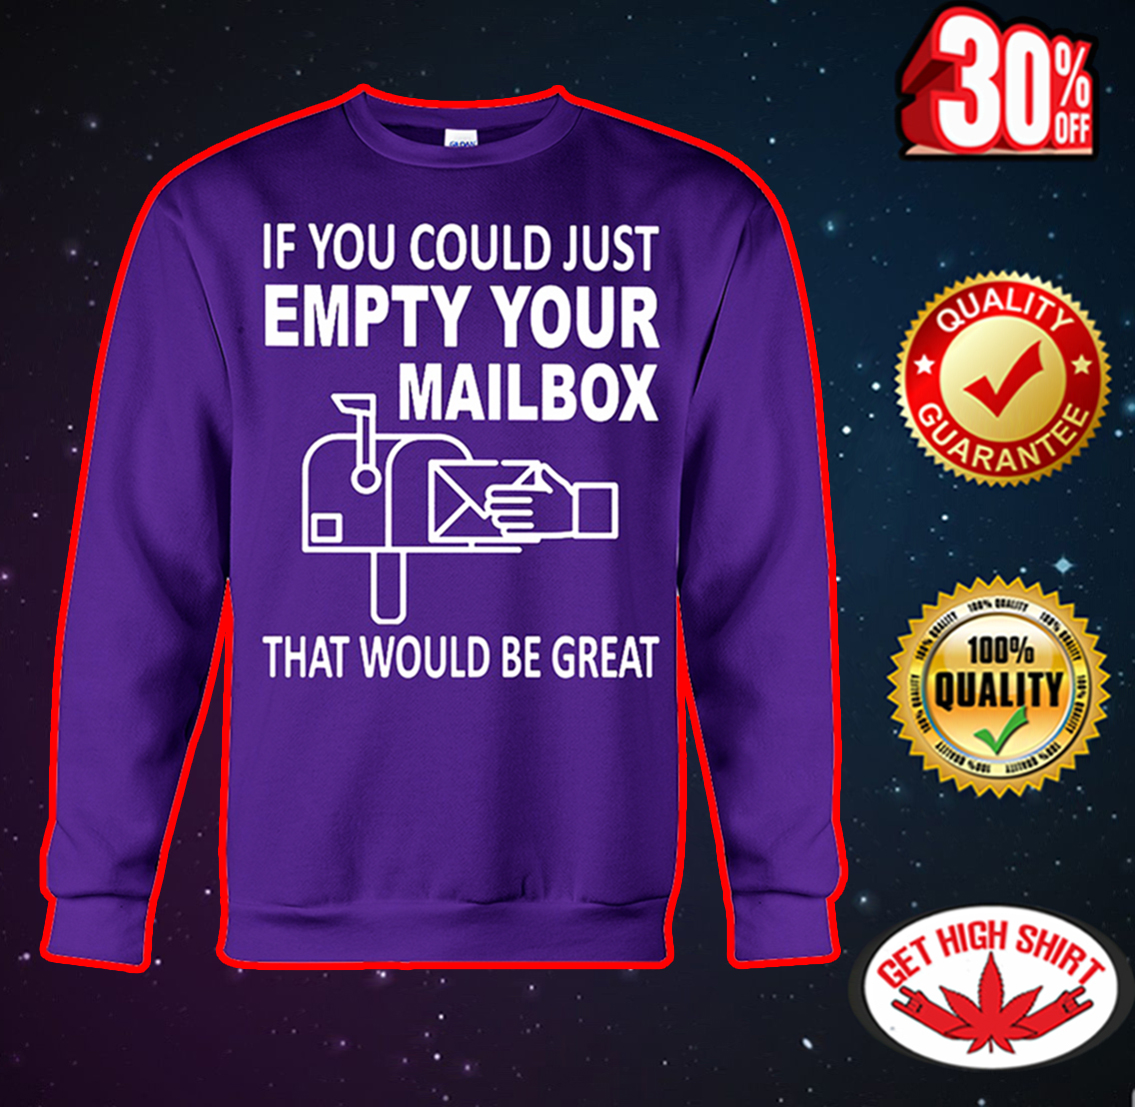 If you could just empty your mailbox that would be great sweatshirt